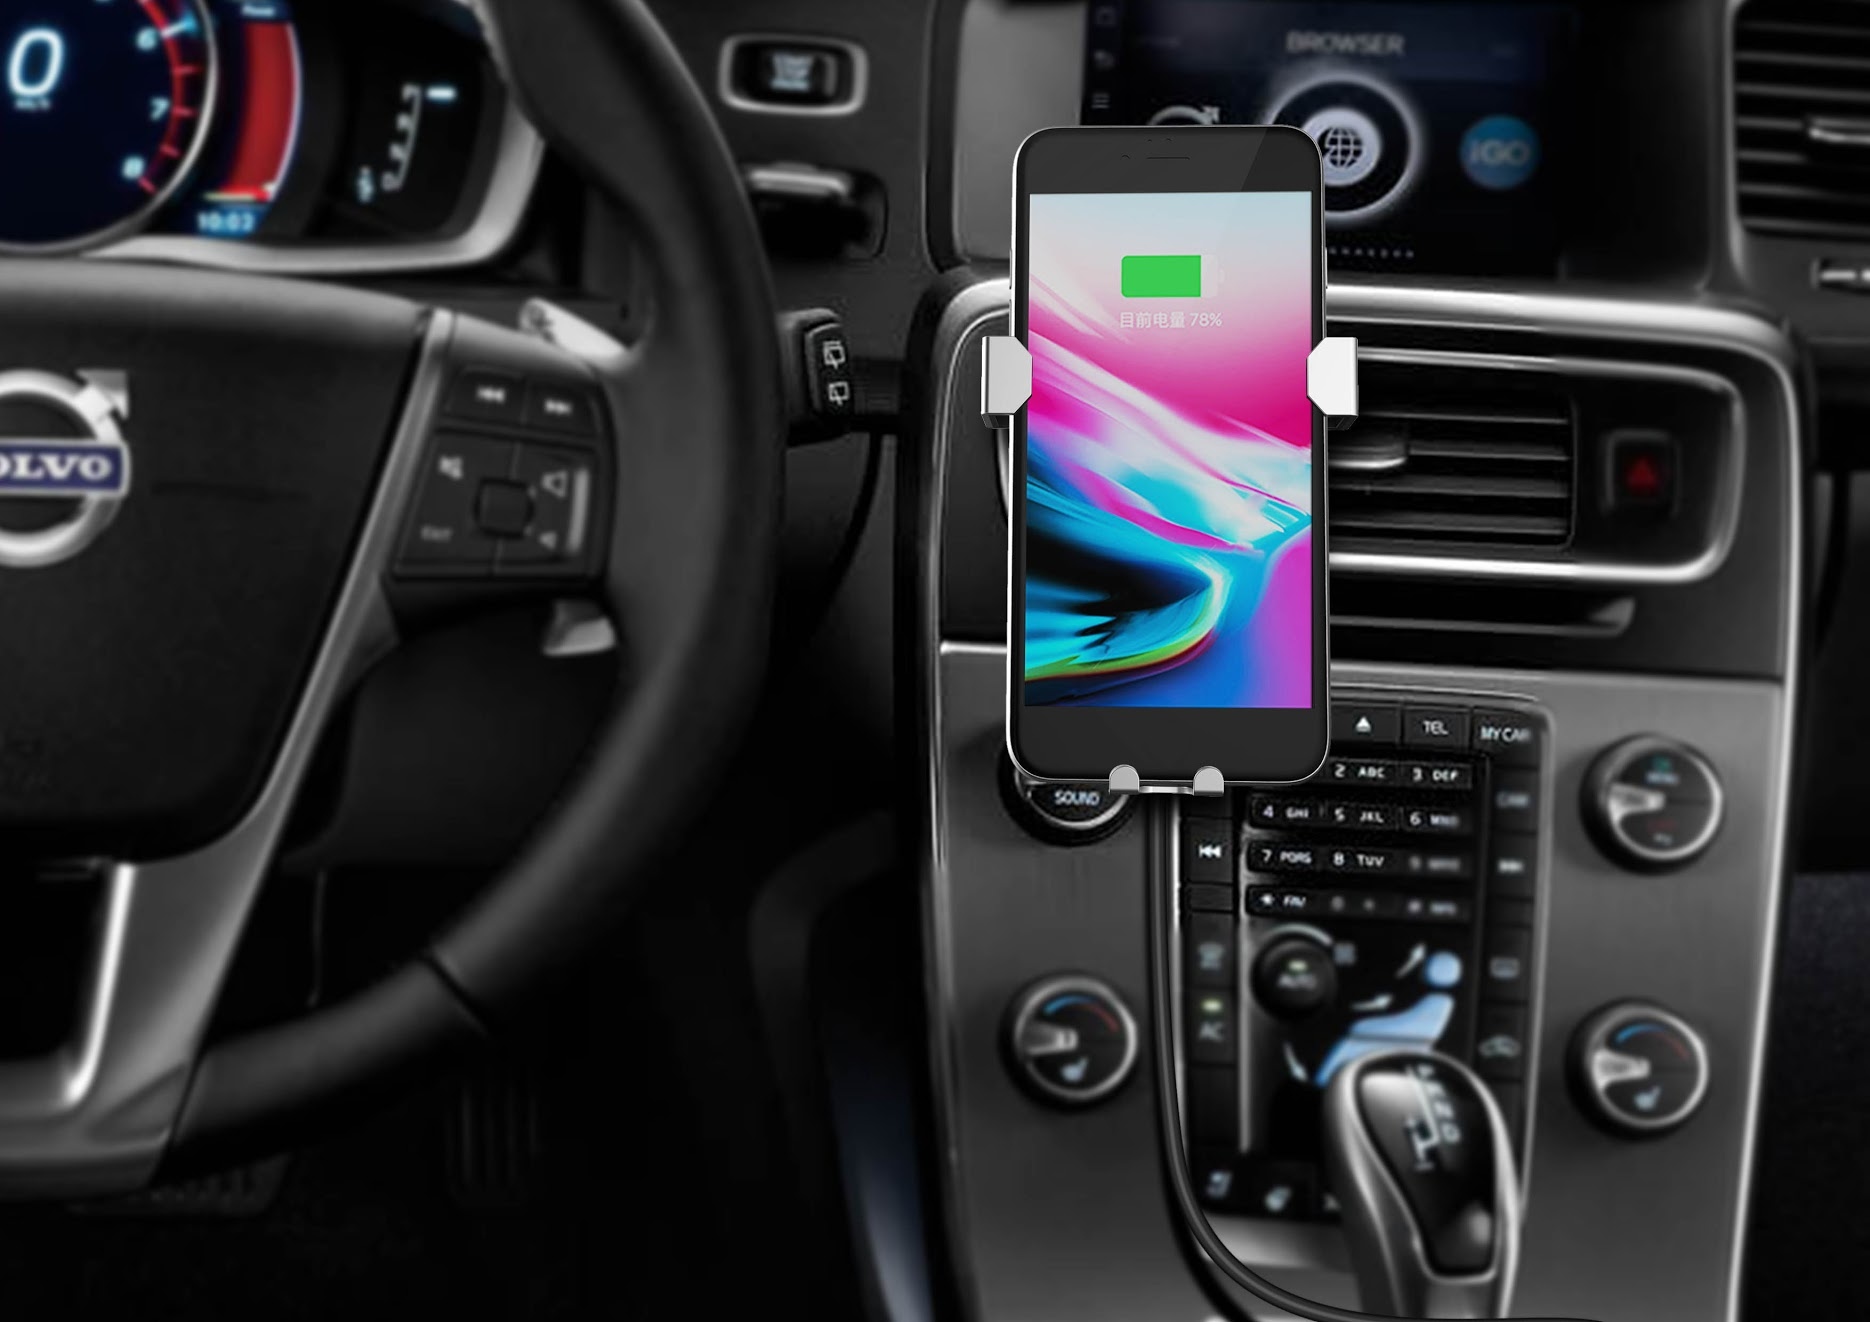 Mofin: A New Wireless iPhone Charger For Your Car